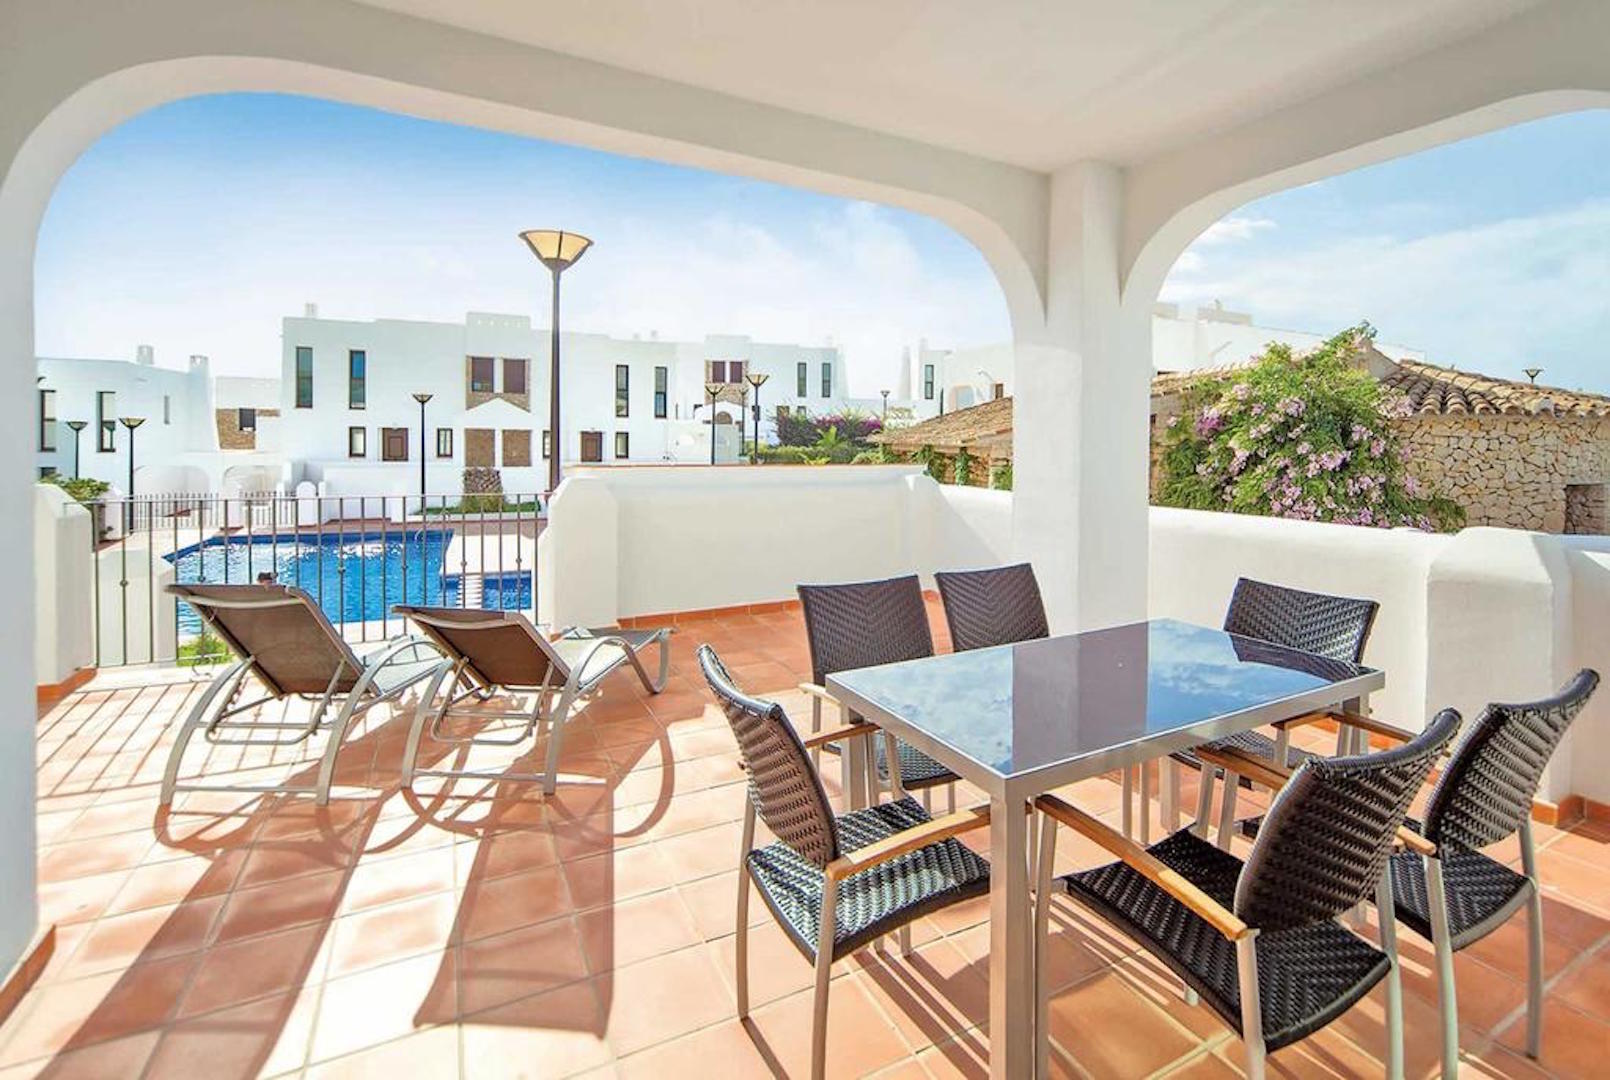 Villa Mirador de Bassetes 4, Villa  with communal pool in Calpe, on the Costa Blanca, Spain for 4 persons.....